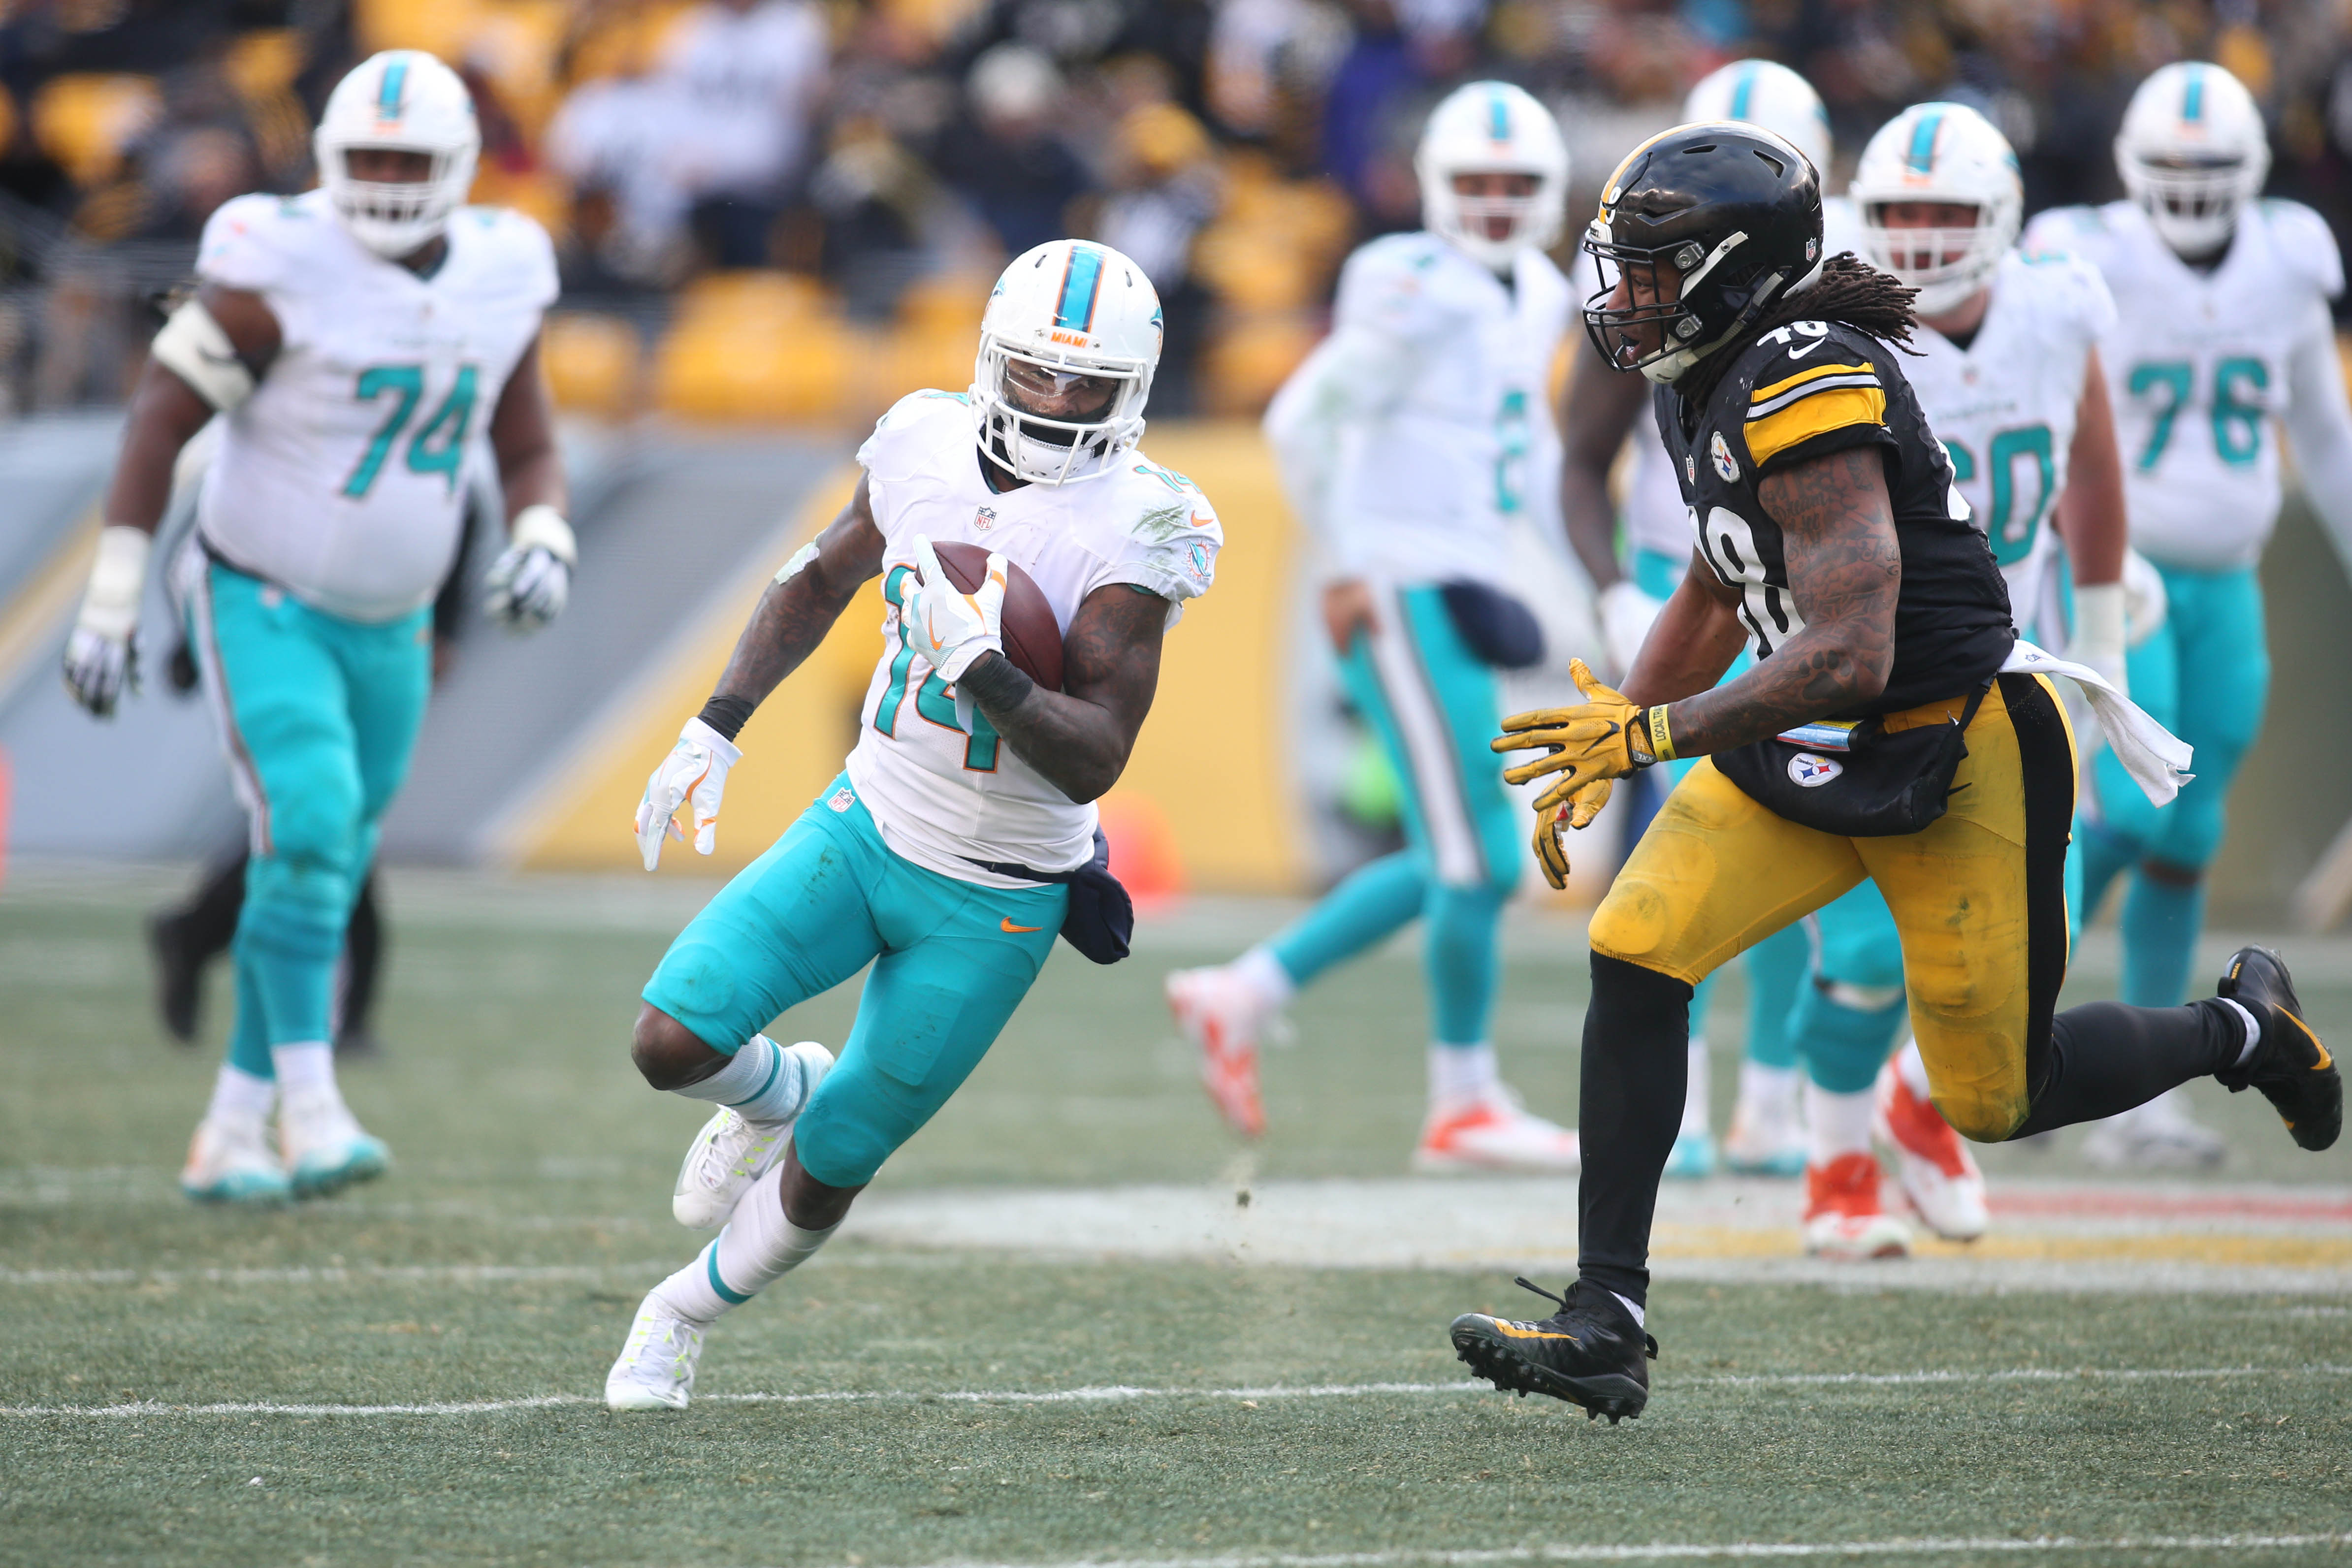 9797488-nfl-afc-wild-card-miami-dolphins-at-pittsburgh-steelers